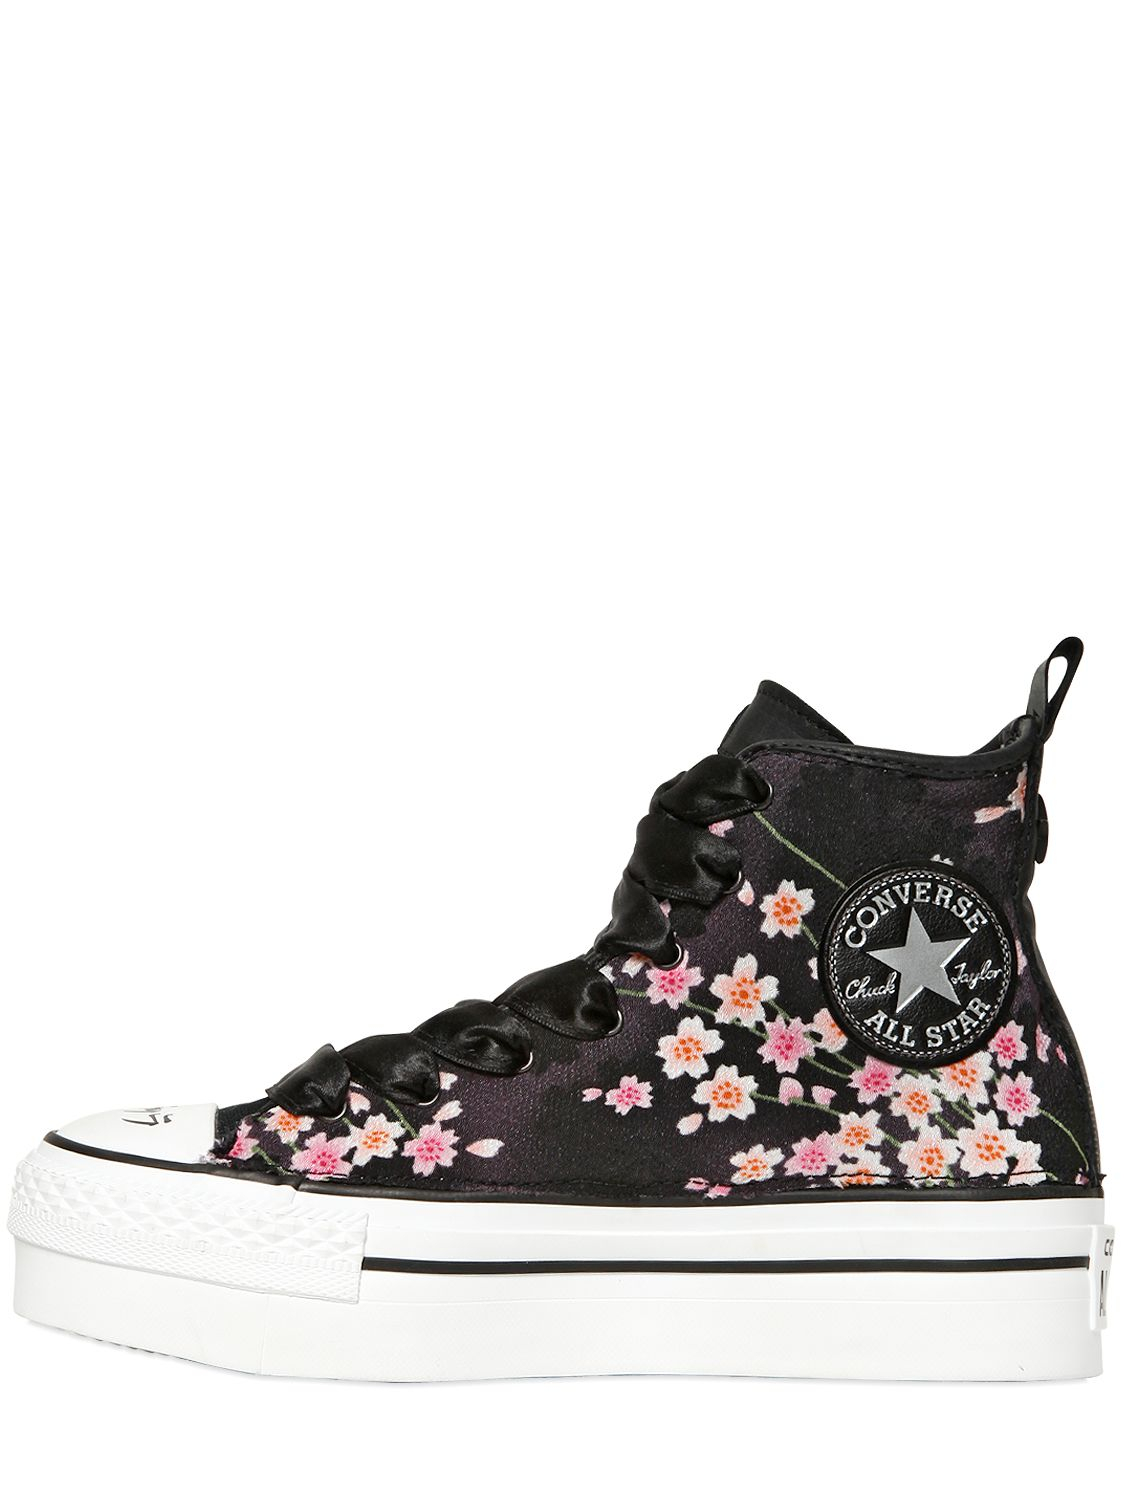 Converse 40mm Chuck Taylor High Top Sneakers in Black